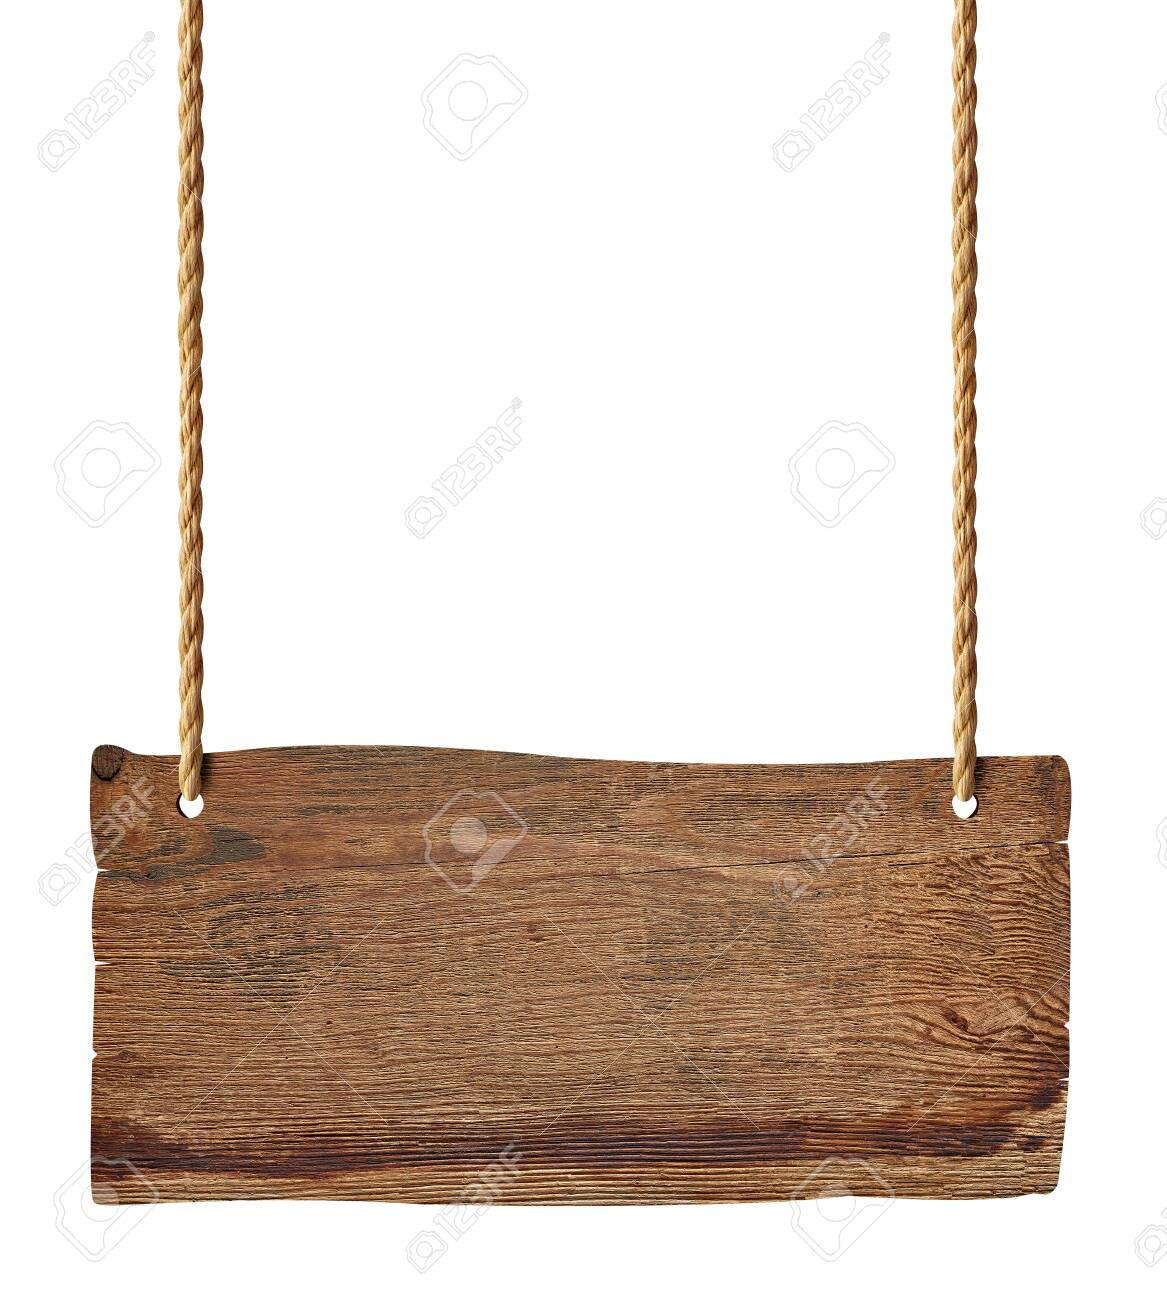 wooden blank sign hanging with chain and rope on white background - 125777386